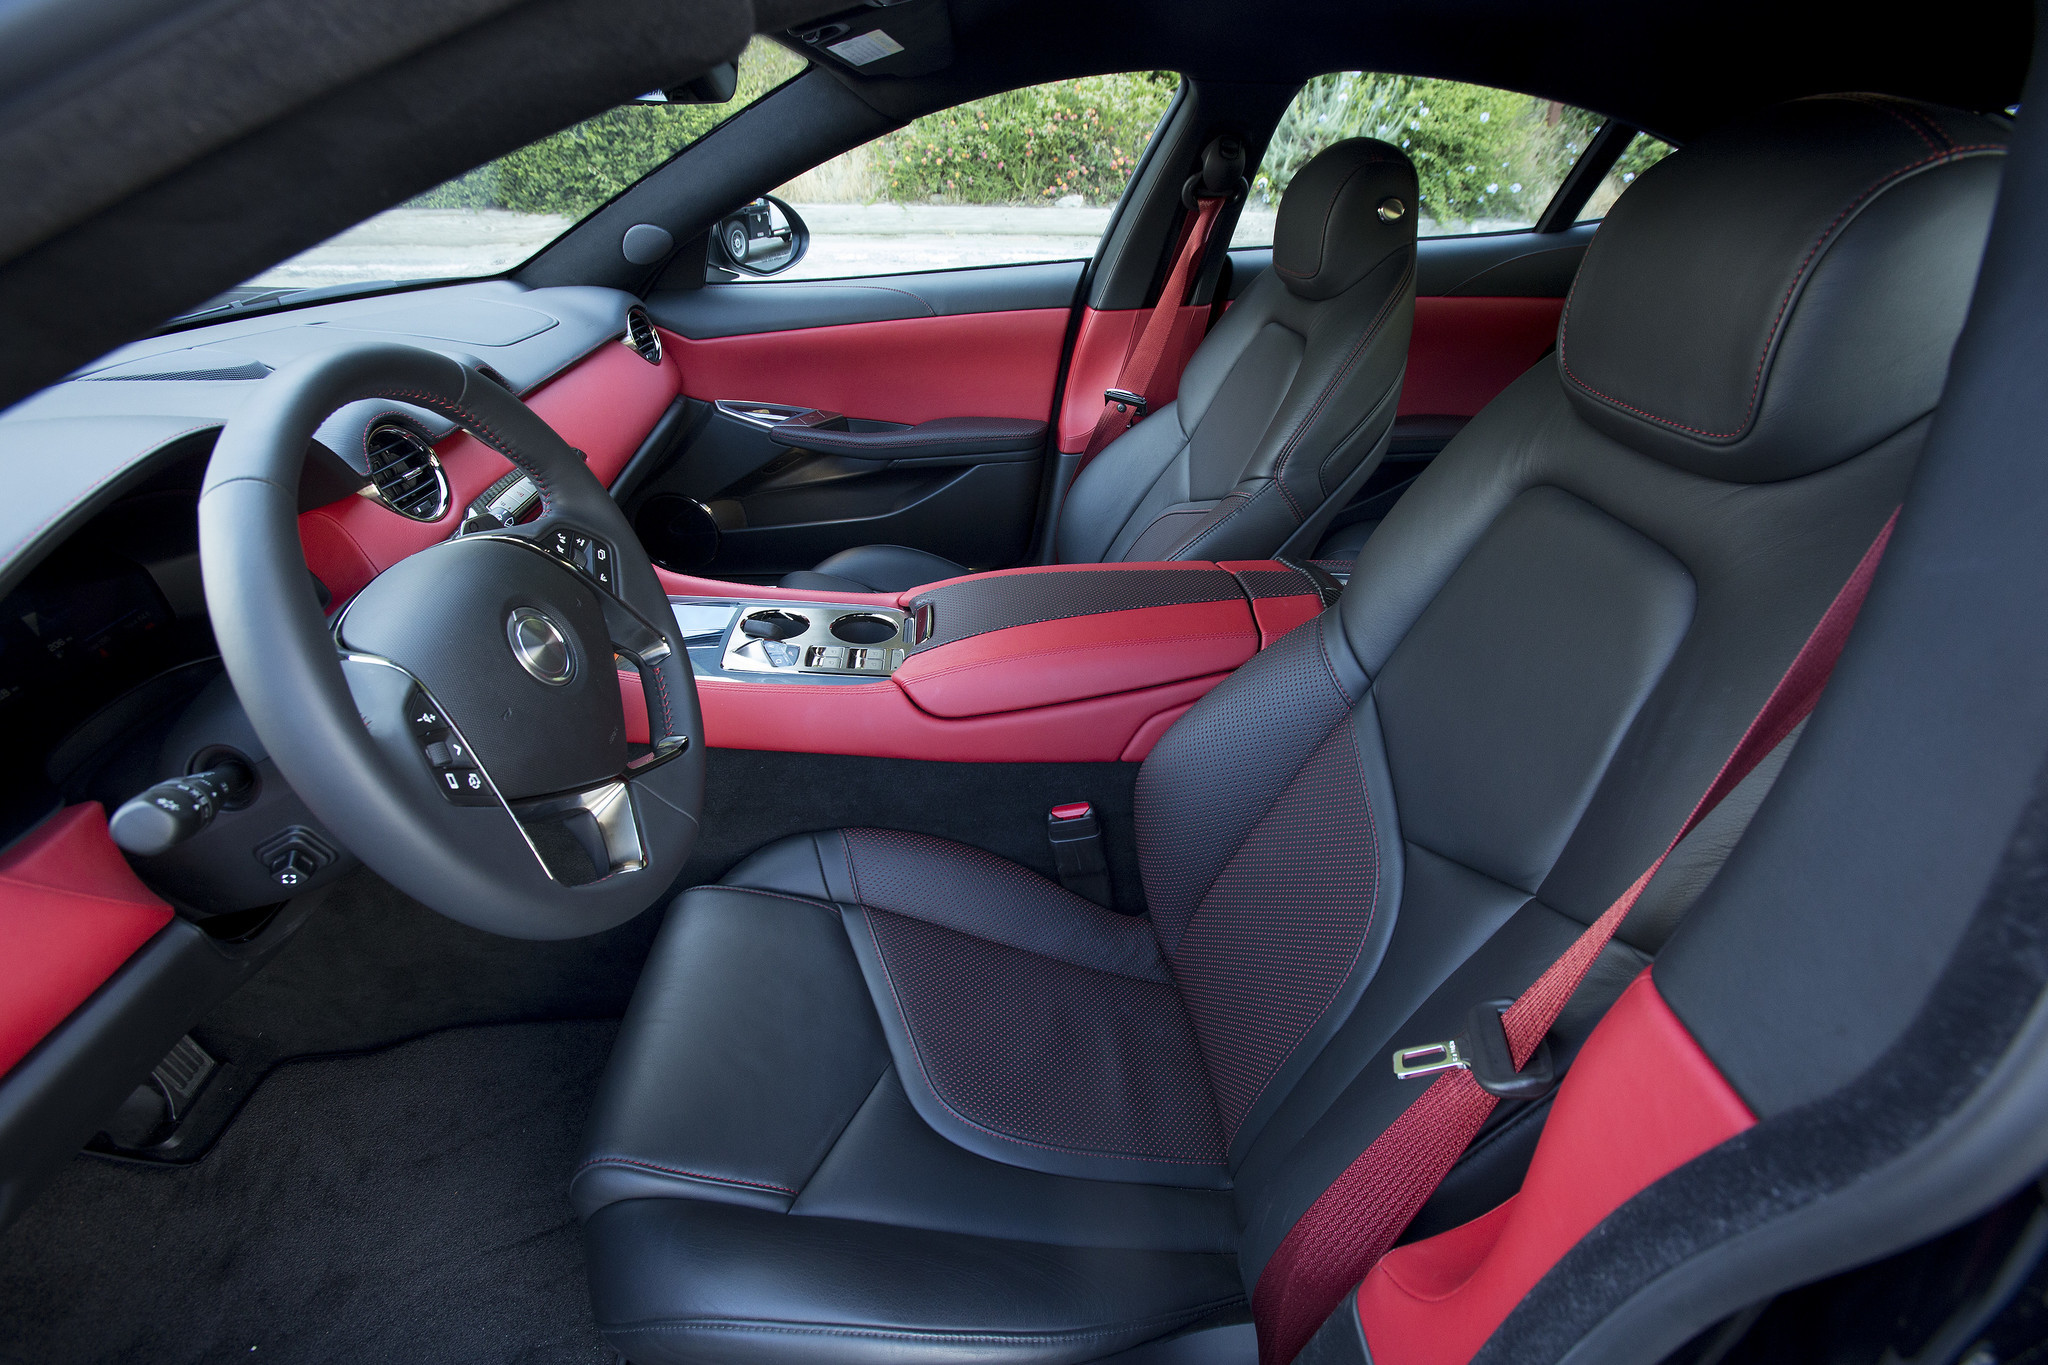 The Revero Designers Have Outed Their Luxury Car With Rich Supple Leather For A Comfortable